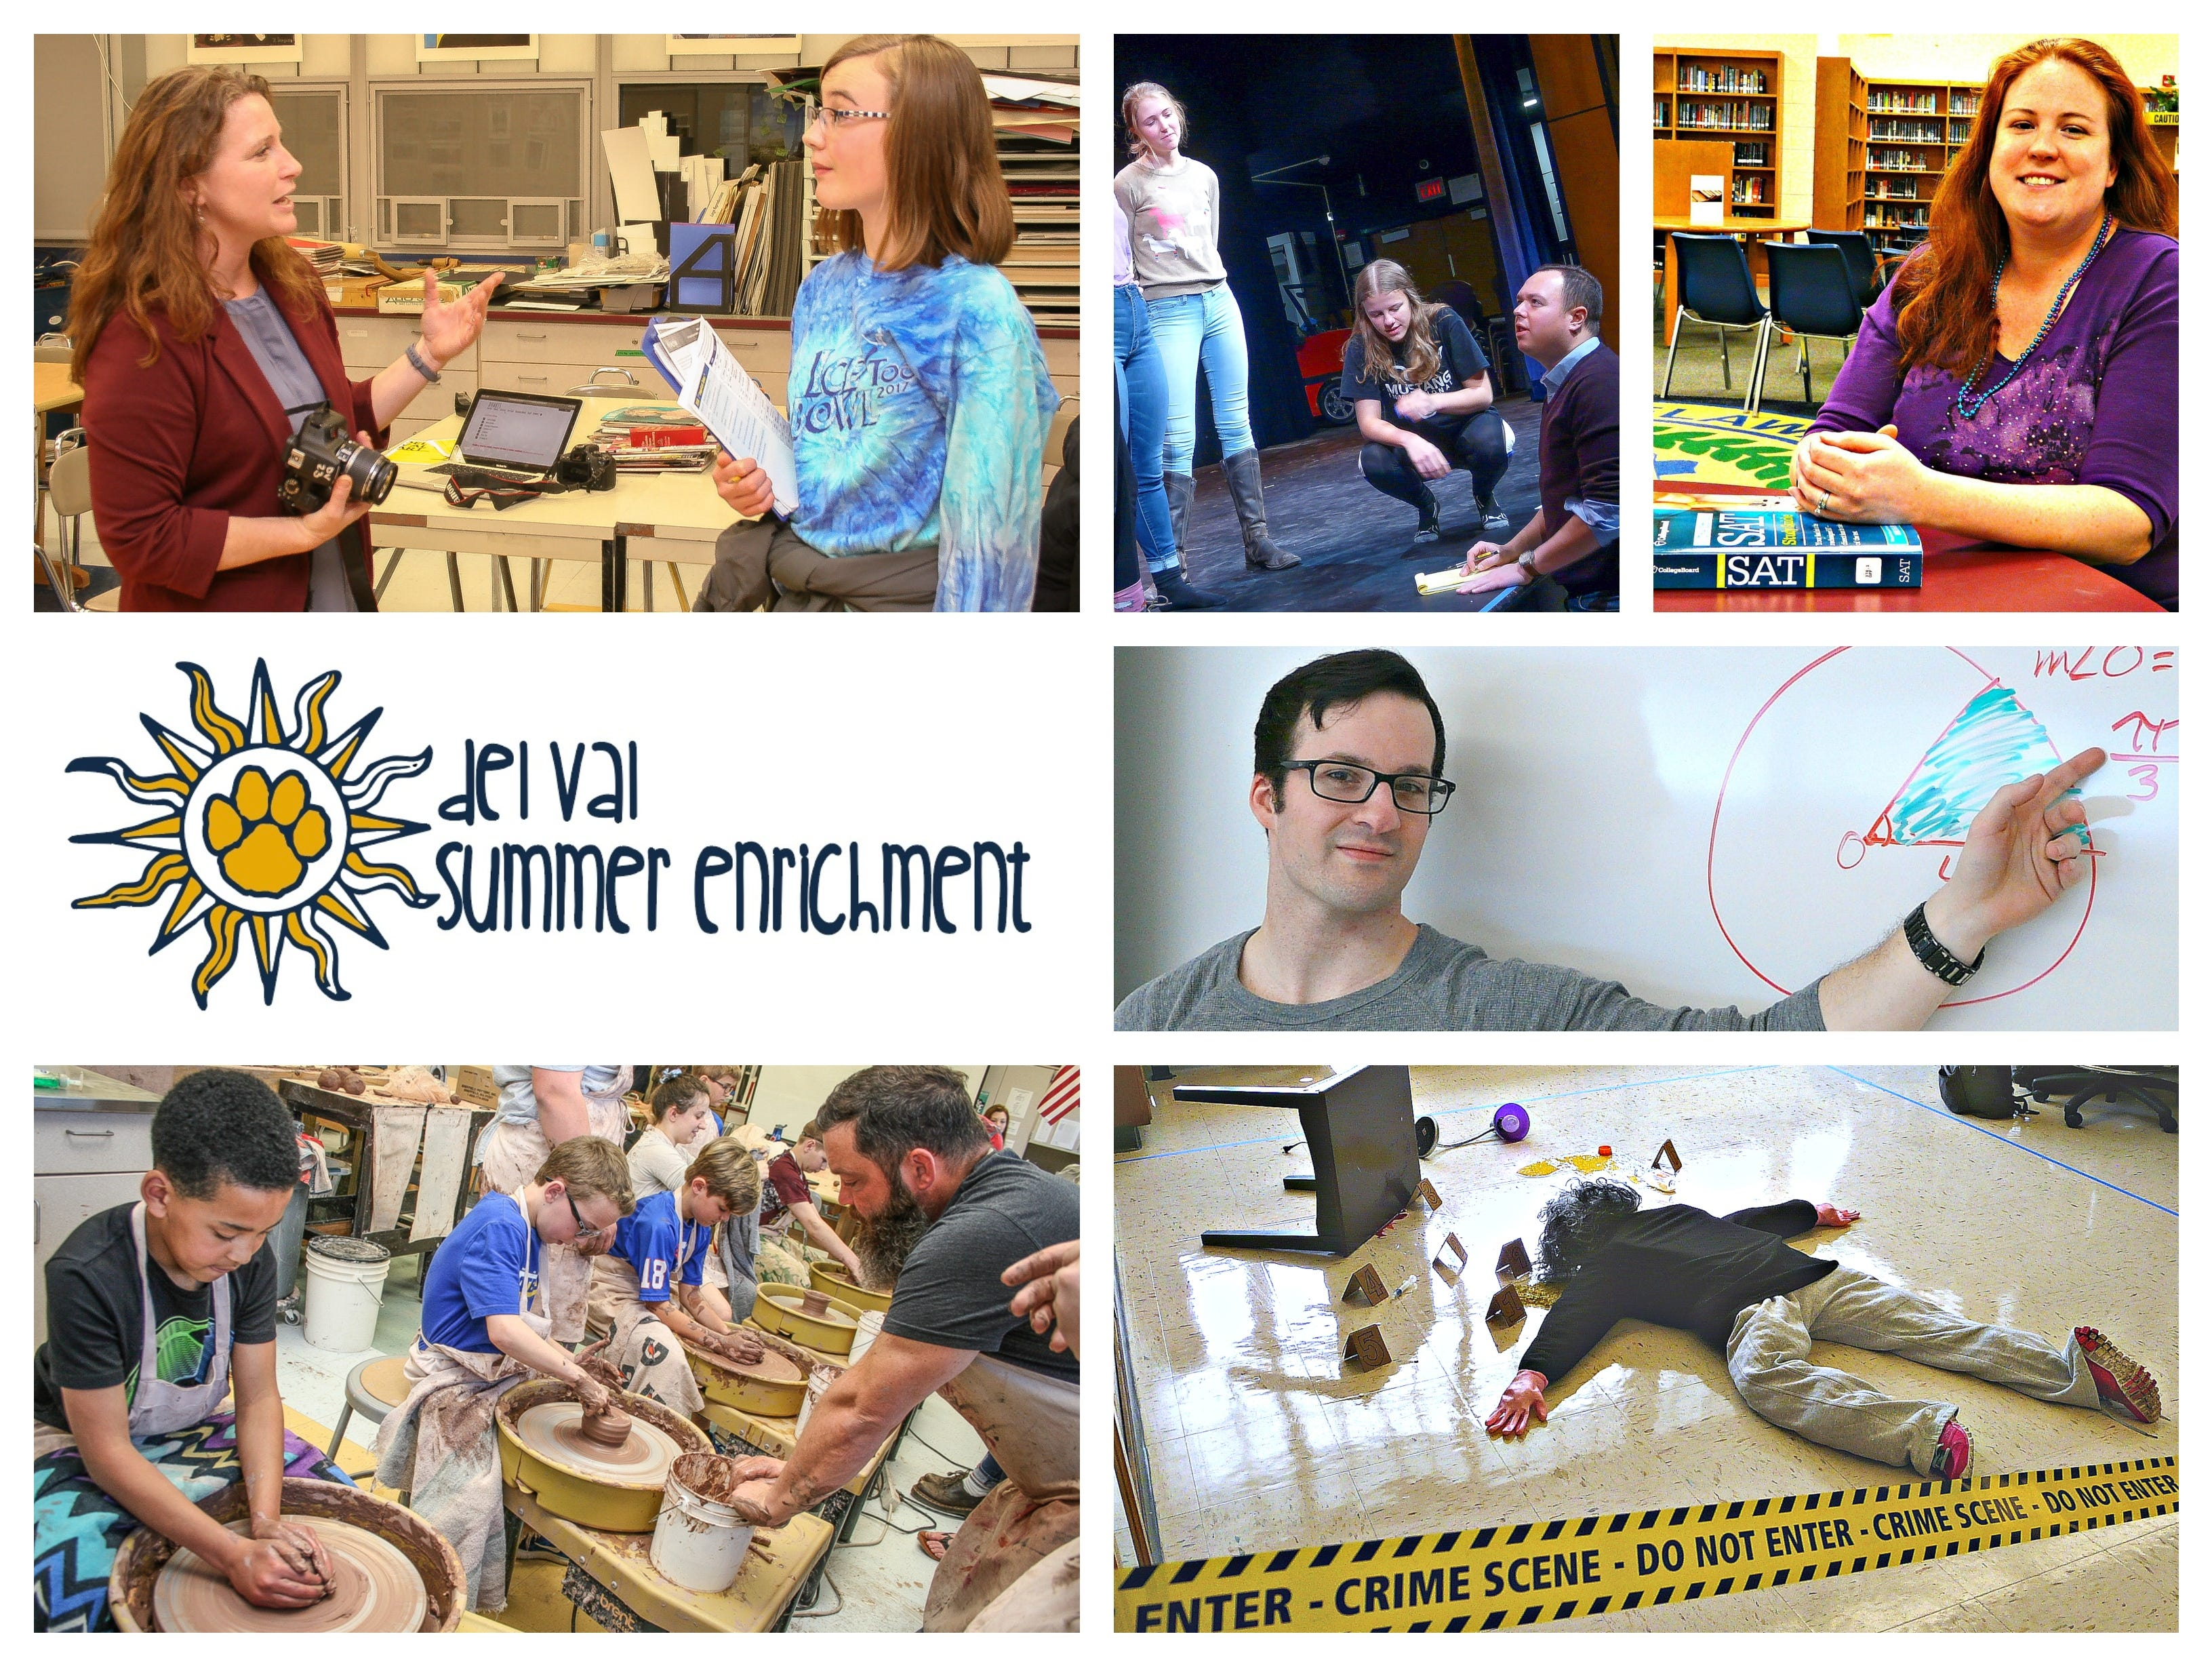 July will be a time for fun and learning at Del Val High School. Subjects include (clockwise from top left) photography, musical theater, SAT prep in English and math, crime scene investigation and ceramics.